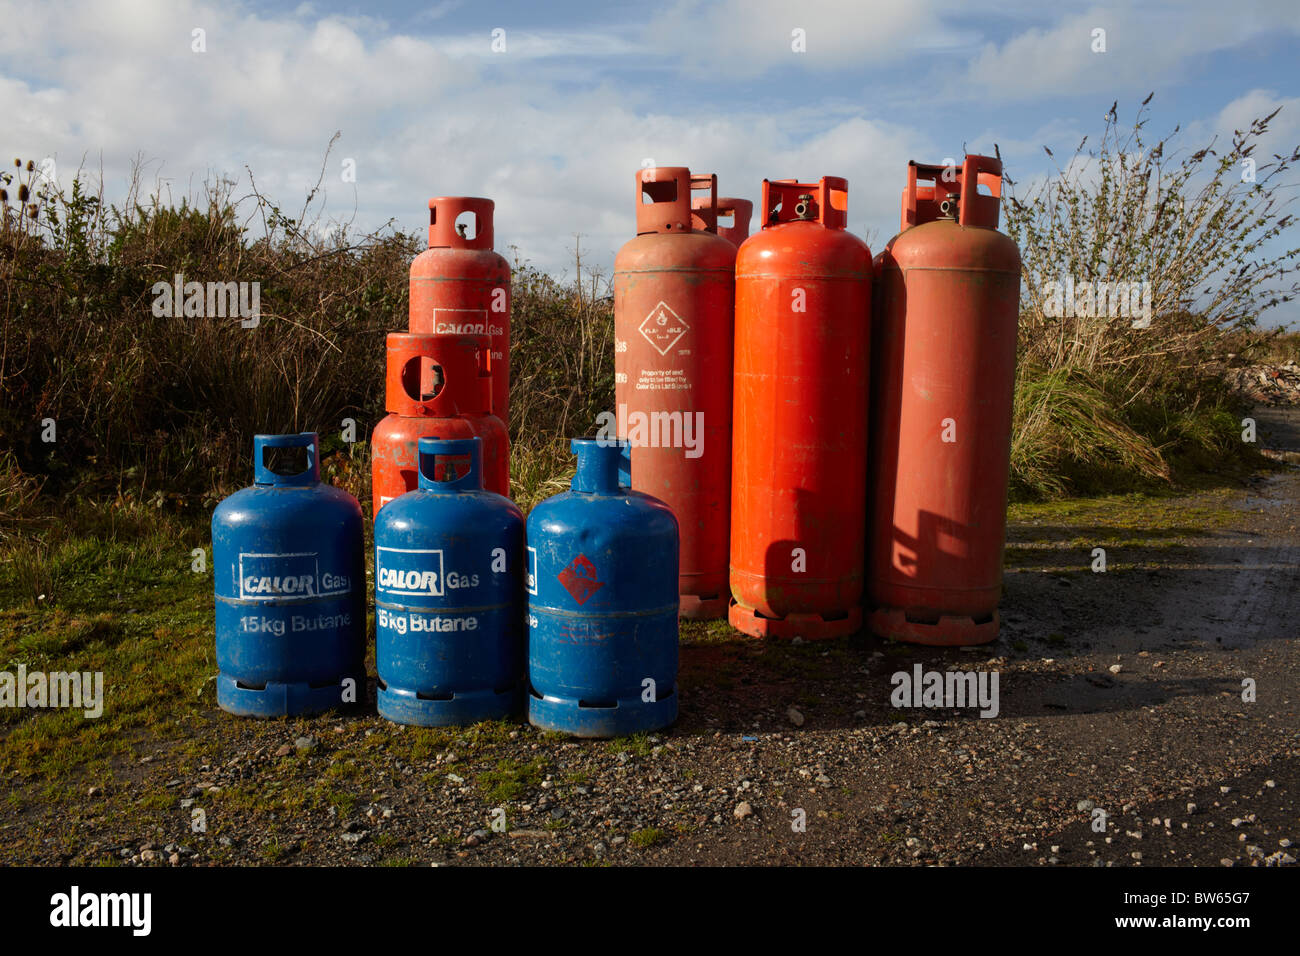 Gas cannisters - Stock Image